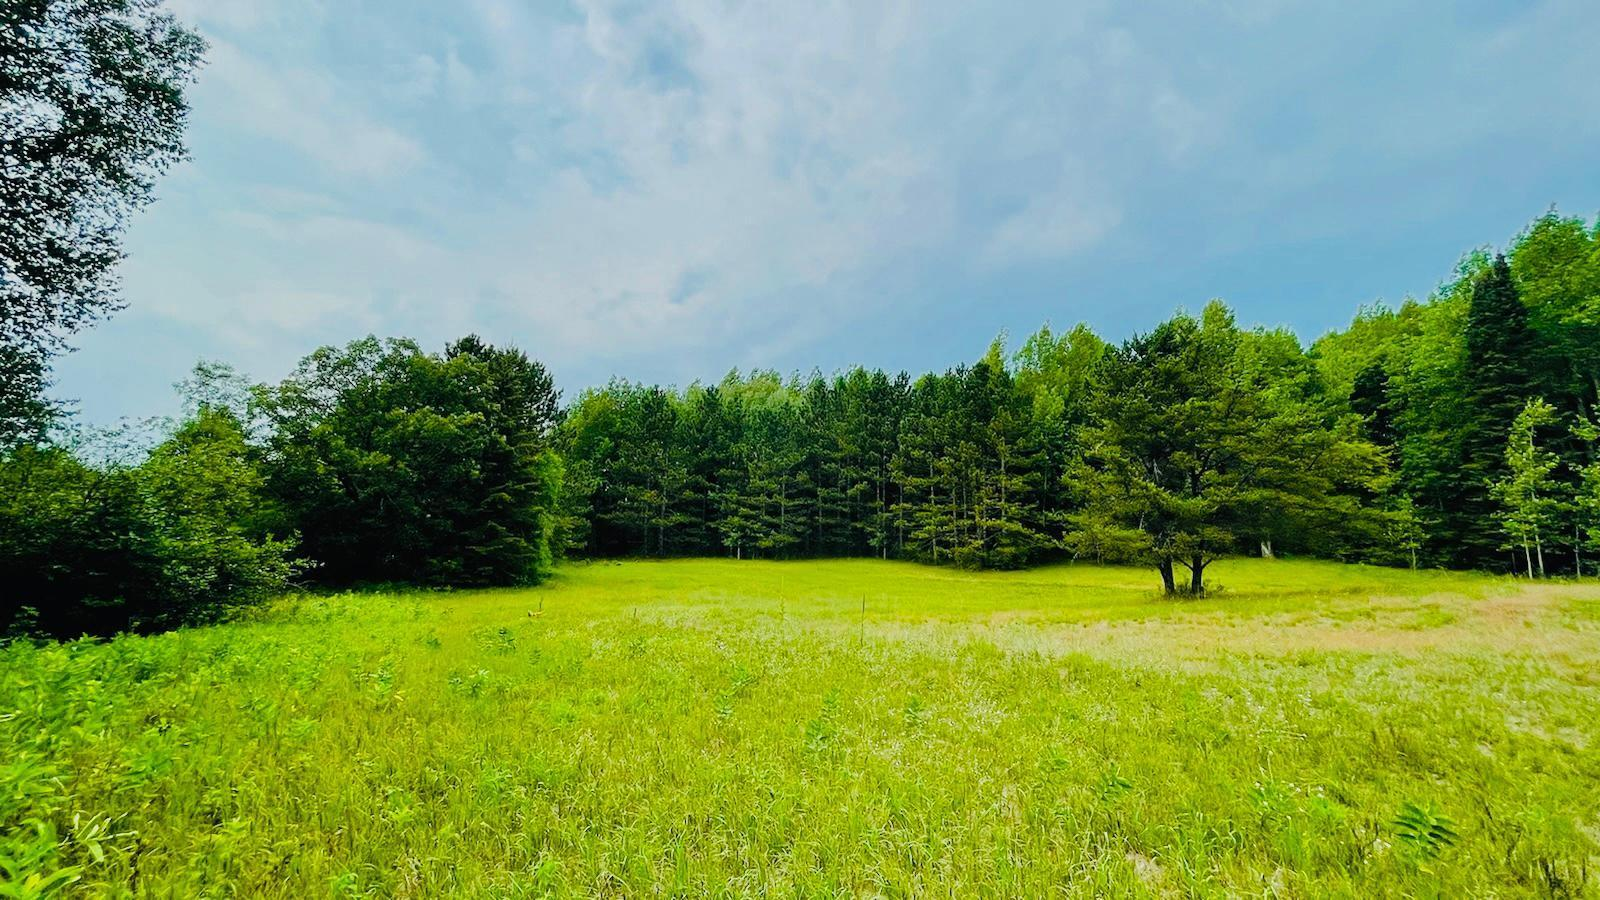 """Selling """"As Is"""" Property has dilapidated dwelling, removal at buyers expense.  Beautiful private wooded acreage with build site already cleared. Convenient to town and all that Brainerd Lakes has to offer."""